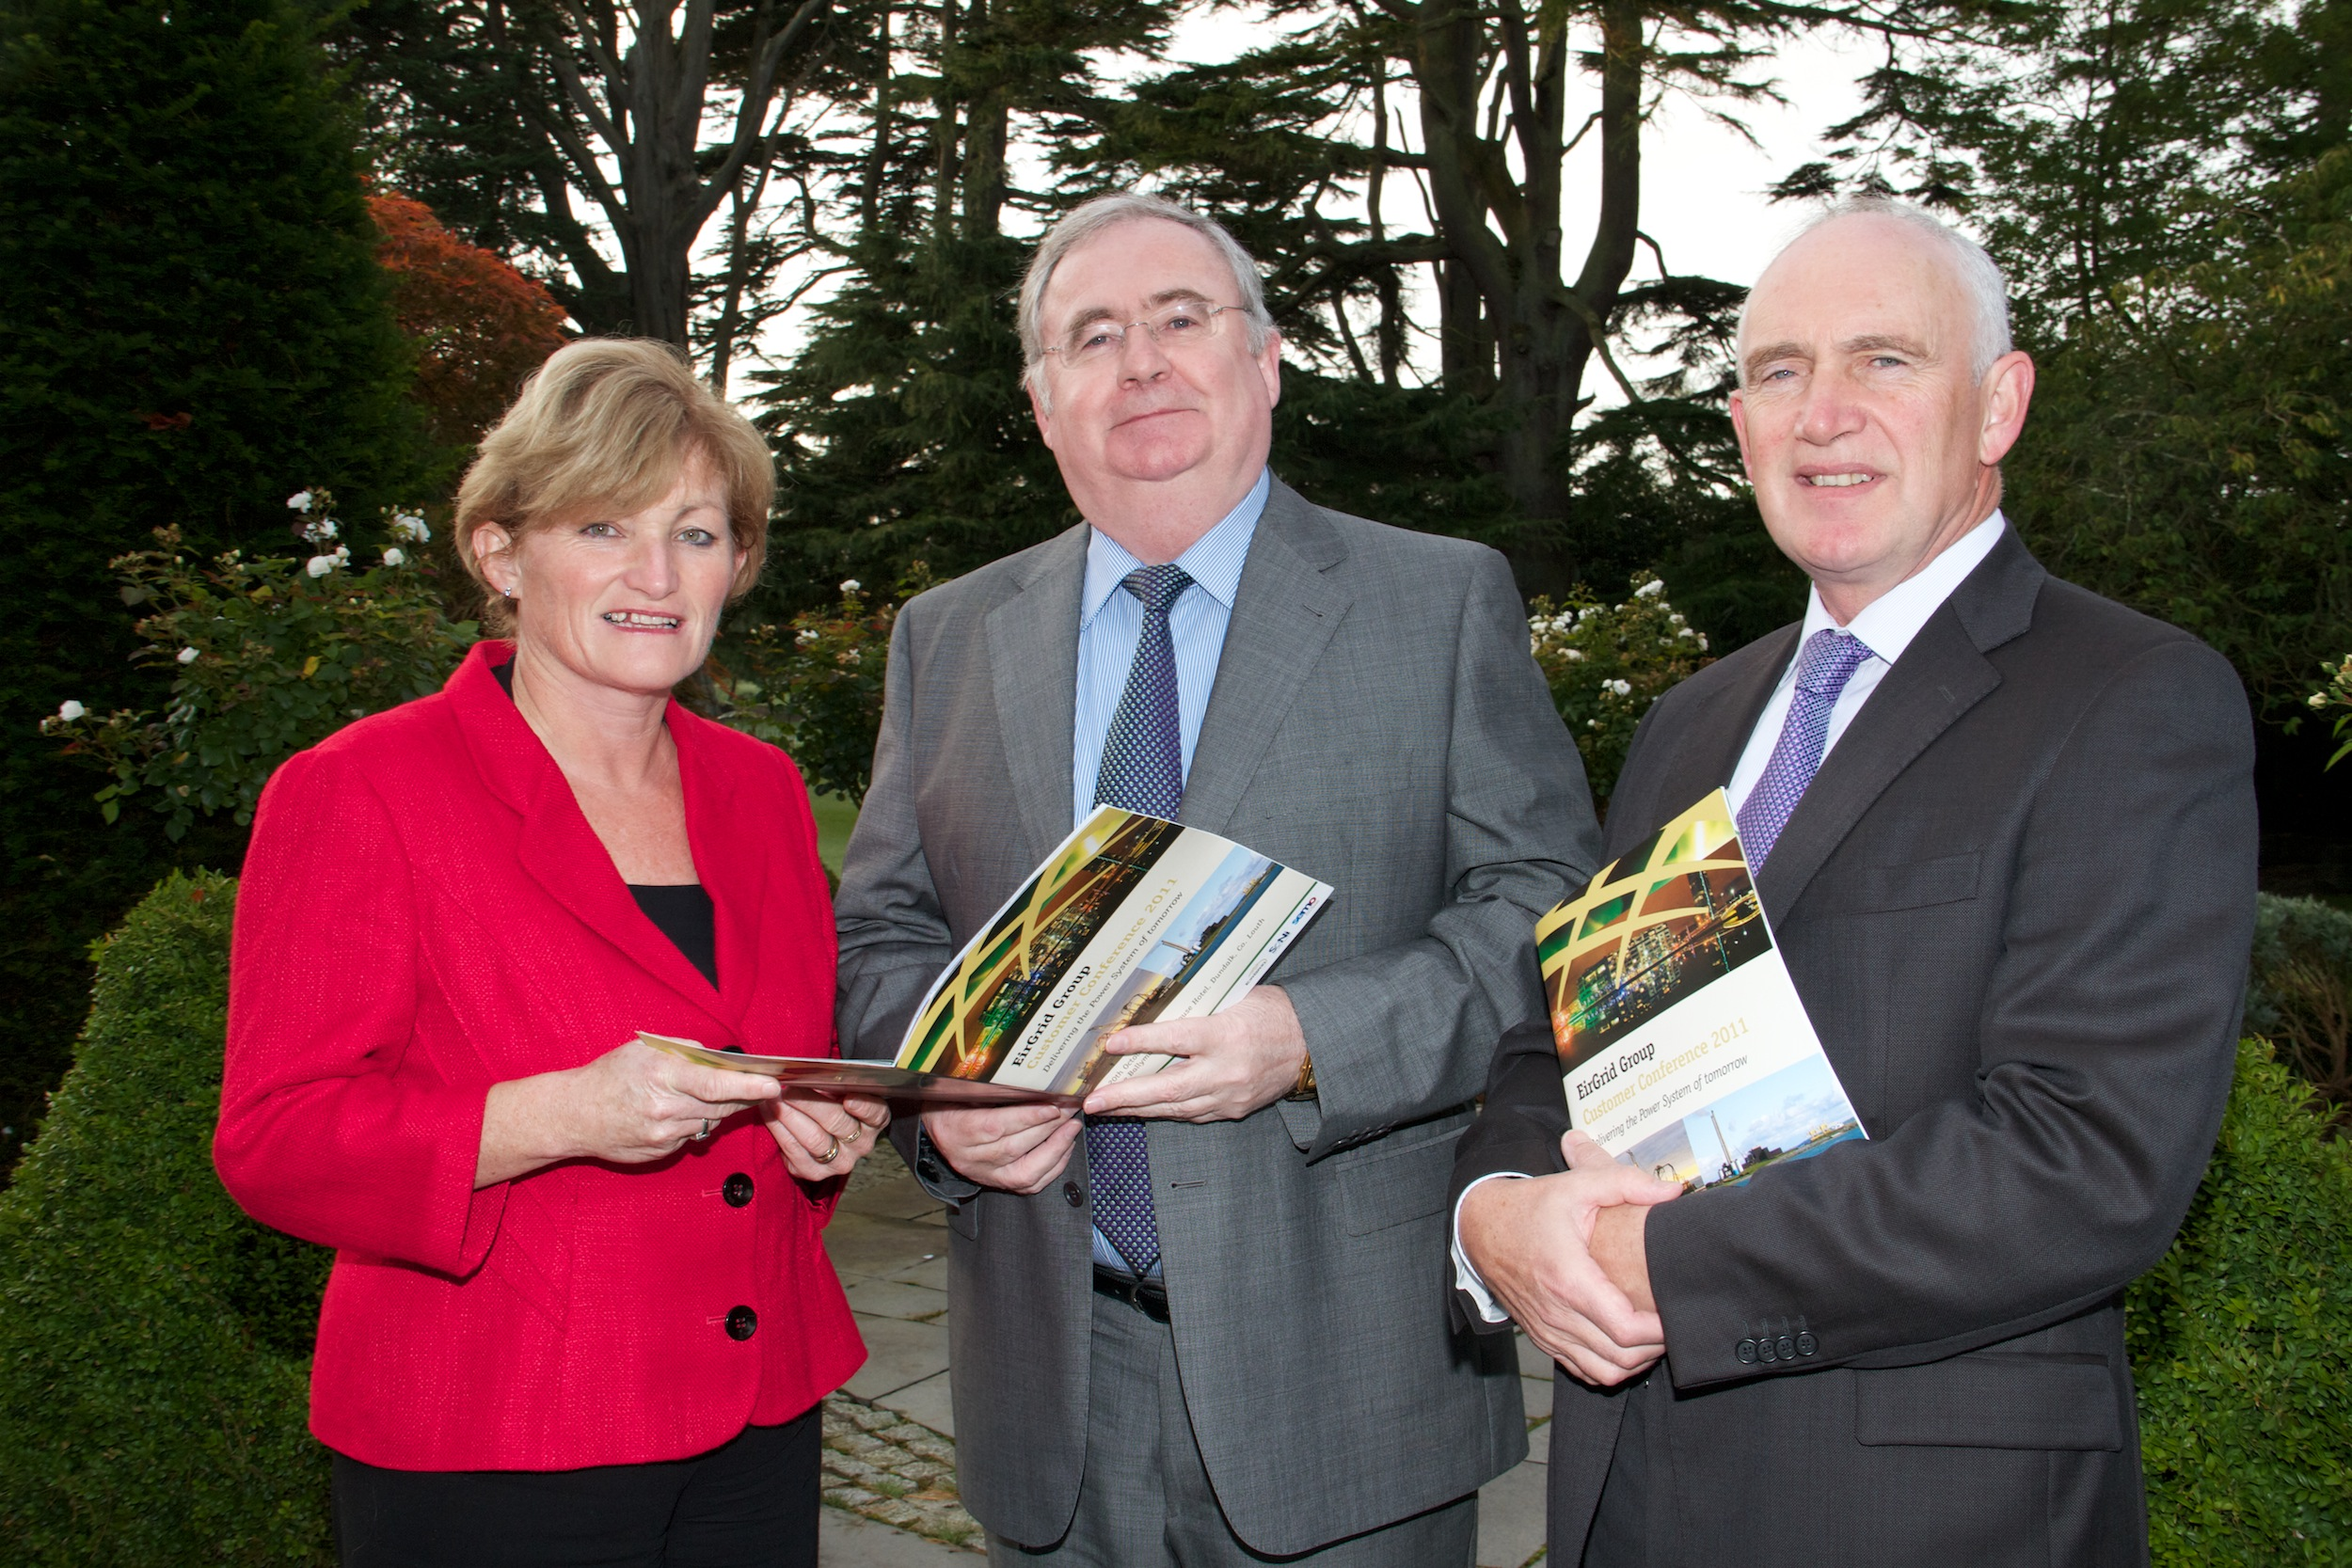 EIRGRID TO PLAY KEY ROLE IN RE-ENERGISING ECONOMIES IN IRELAND AND NORTHERN IRELAND